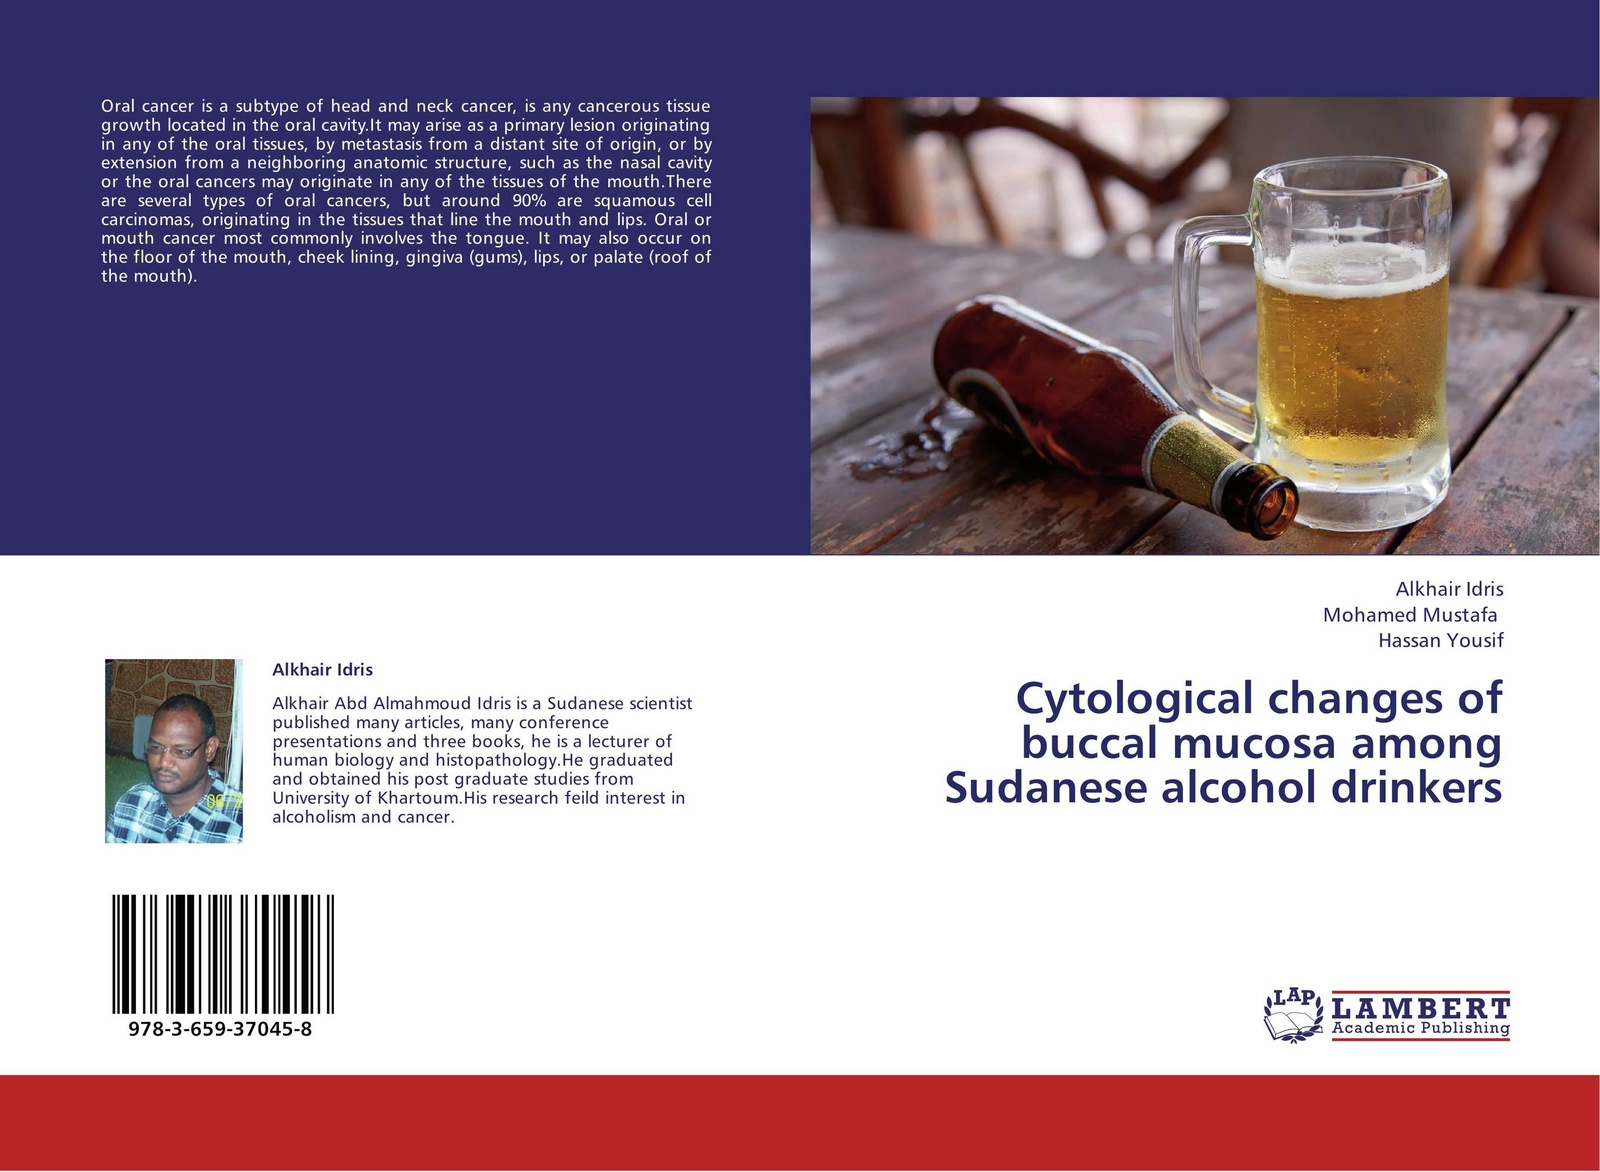 Alkhair Idris,Mohamed Mustafa and Hassan Yousif Cytological changes of buccal mucosa among Sudanese alcohol drinkers kalyana chakravarthy pentapati shashidhar acharya and meghashyam bhat oral cancer in india